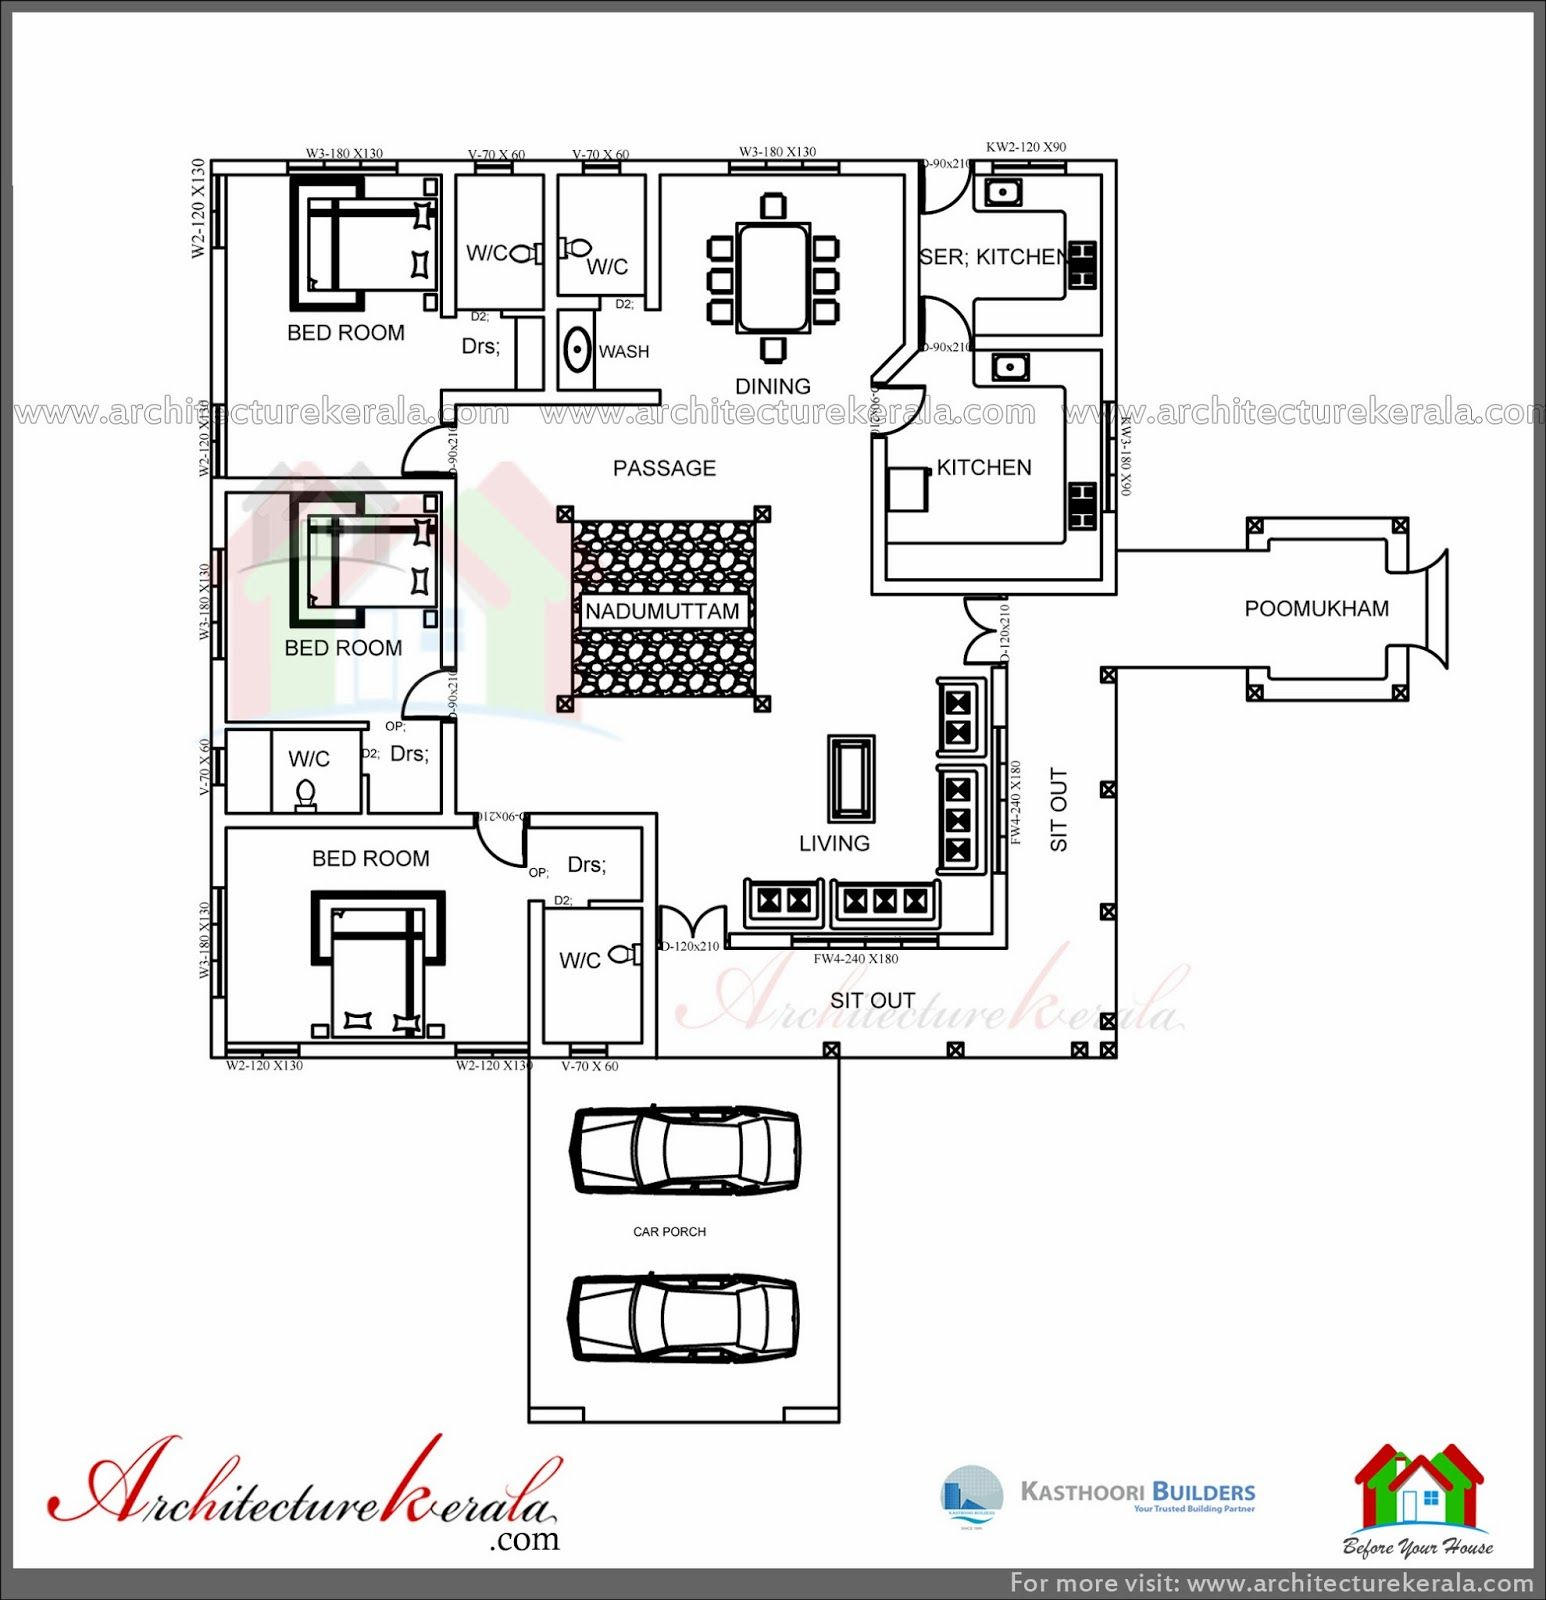 Architecture kerala traditional house plan with for Apartment plans with courtyard